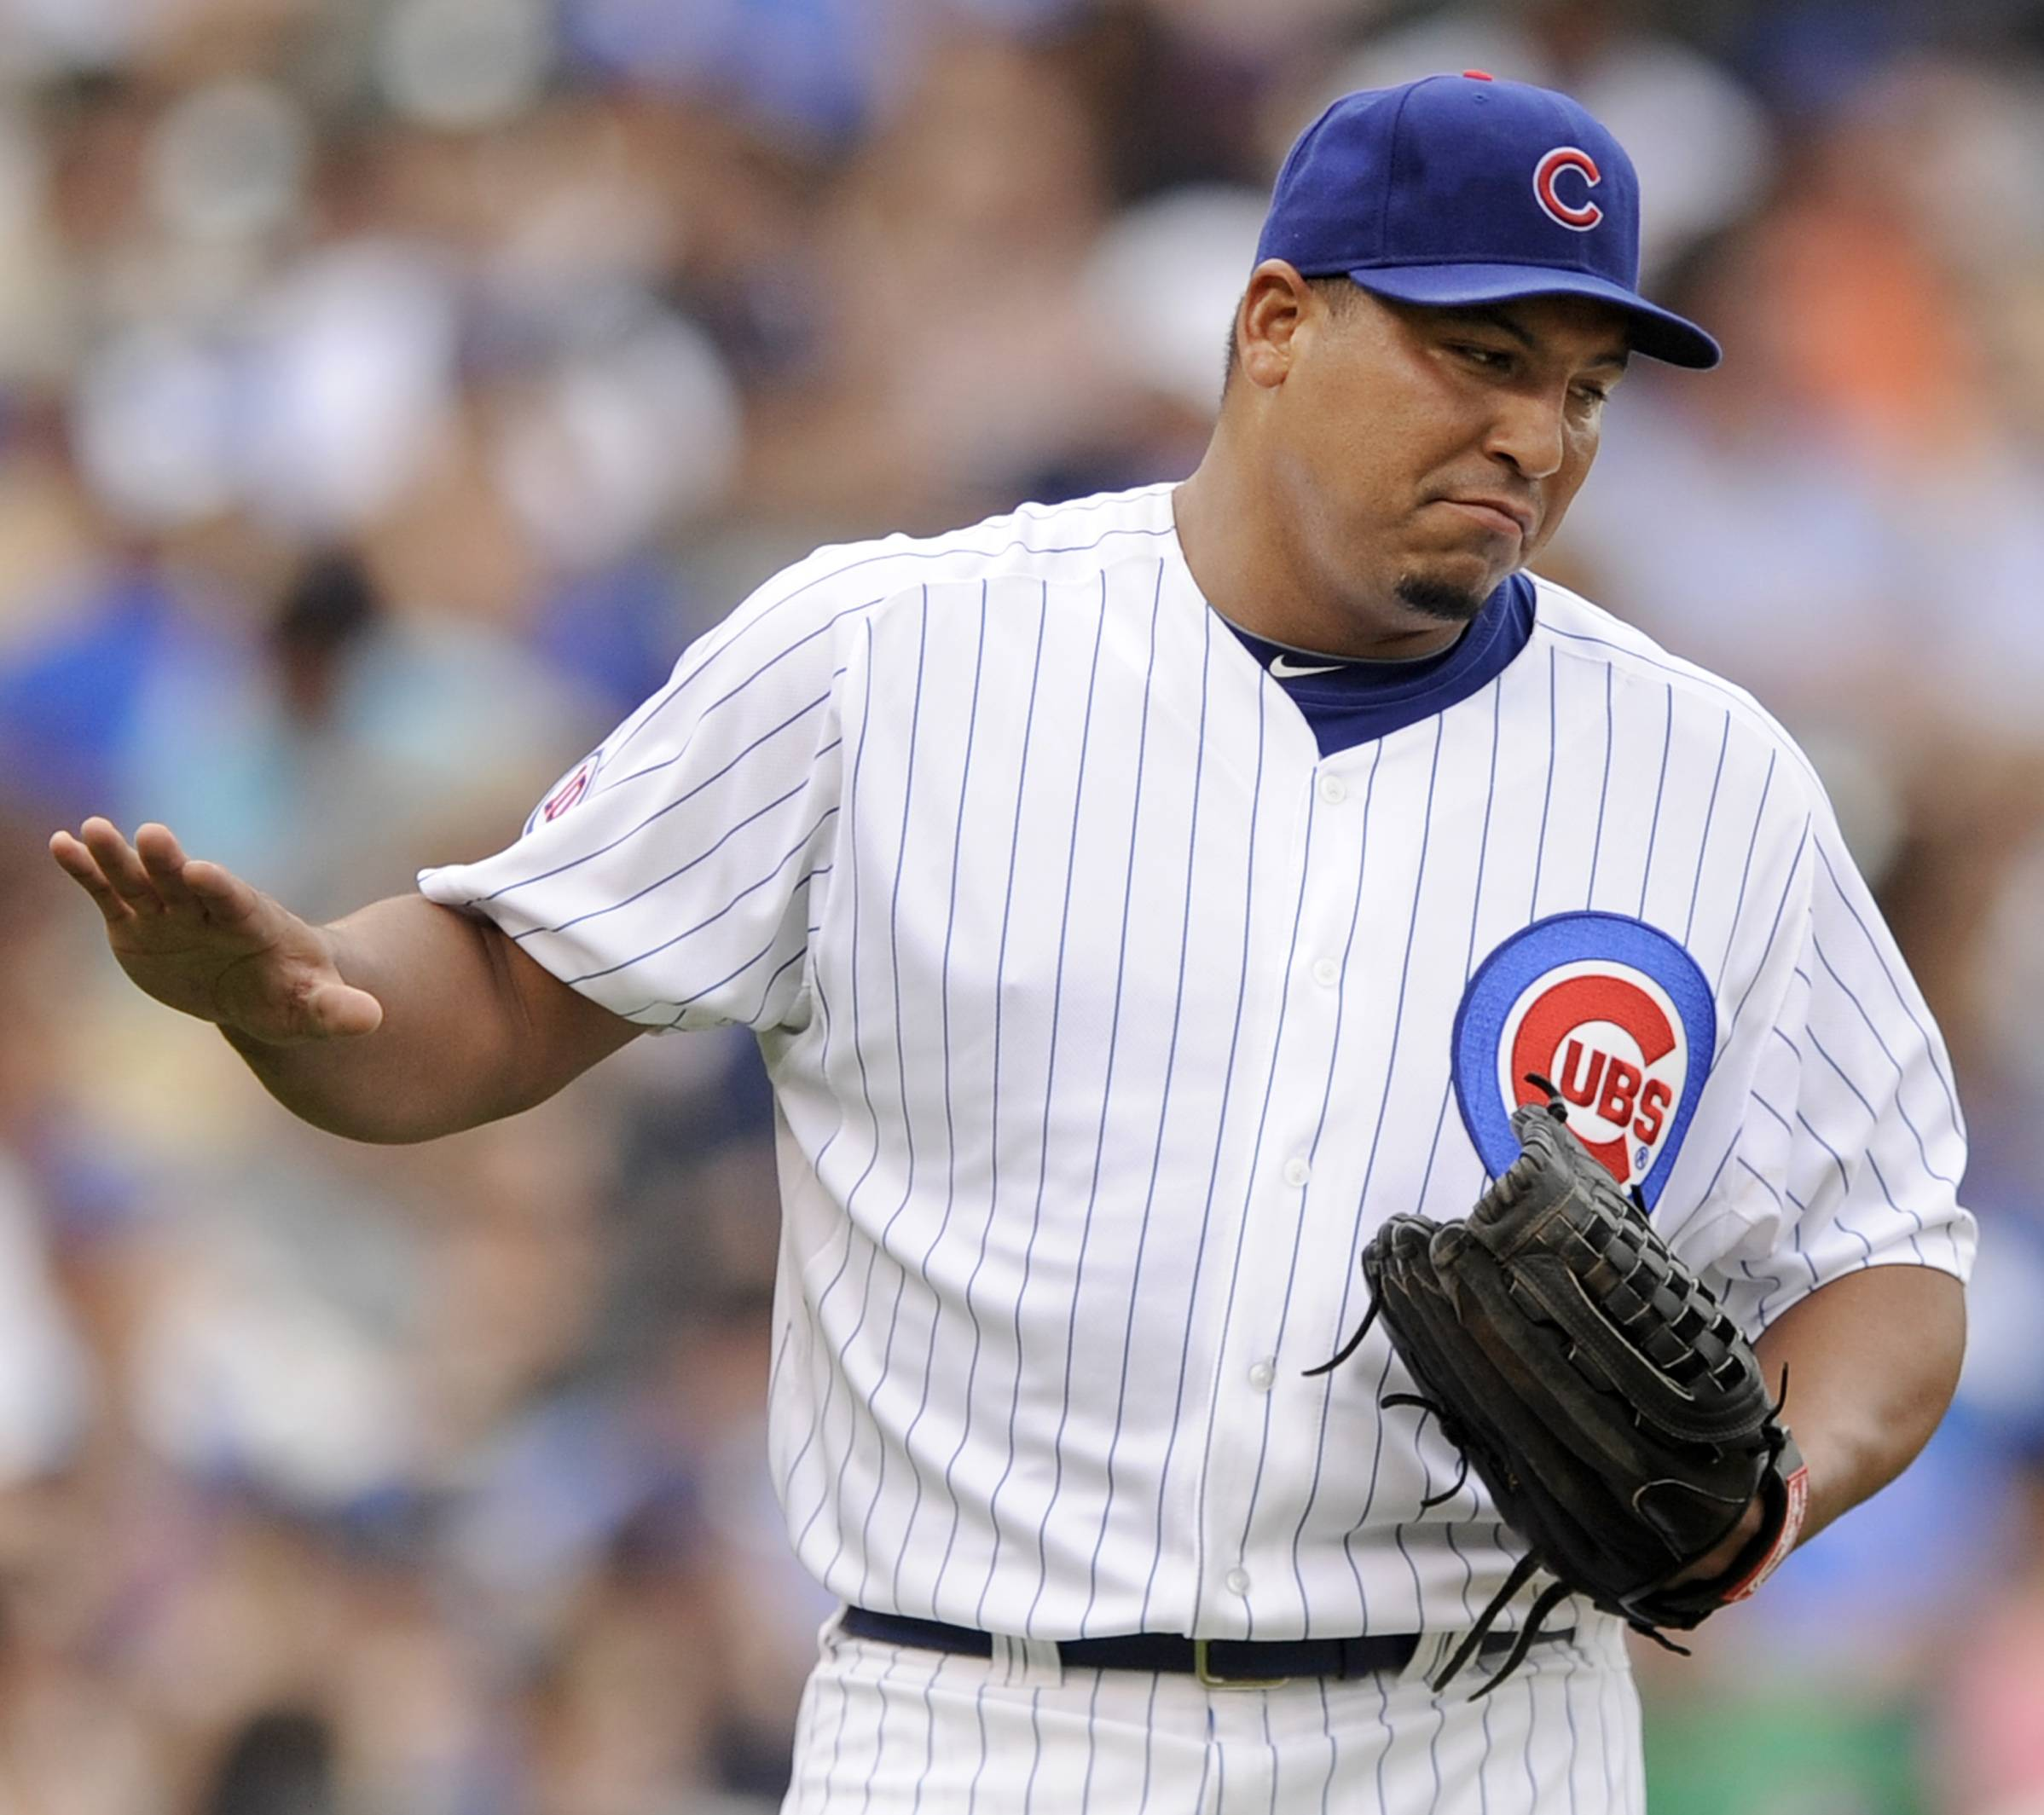 Carlos Zambrano reacts after giving up a solo home run to Florida Marlins' Mike Stanton during the fourth inning Saturday at Wrigley Field.